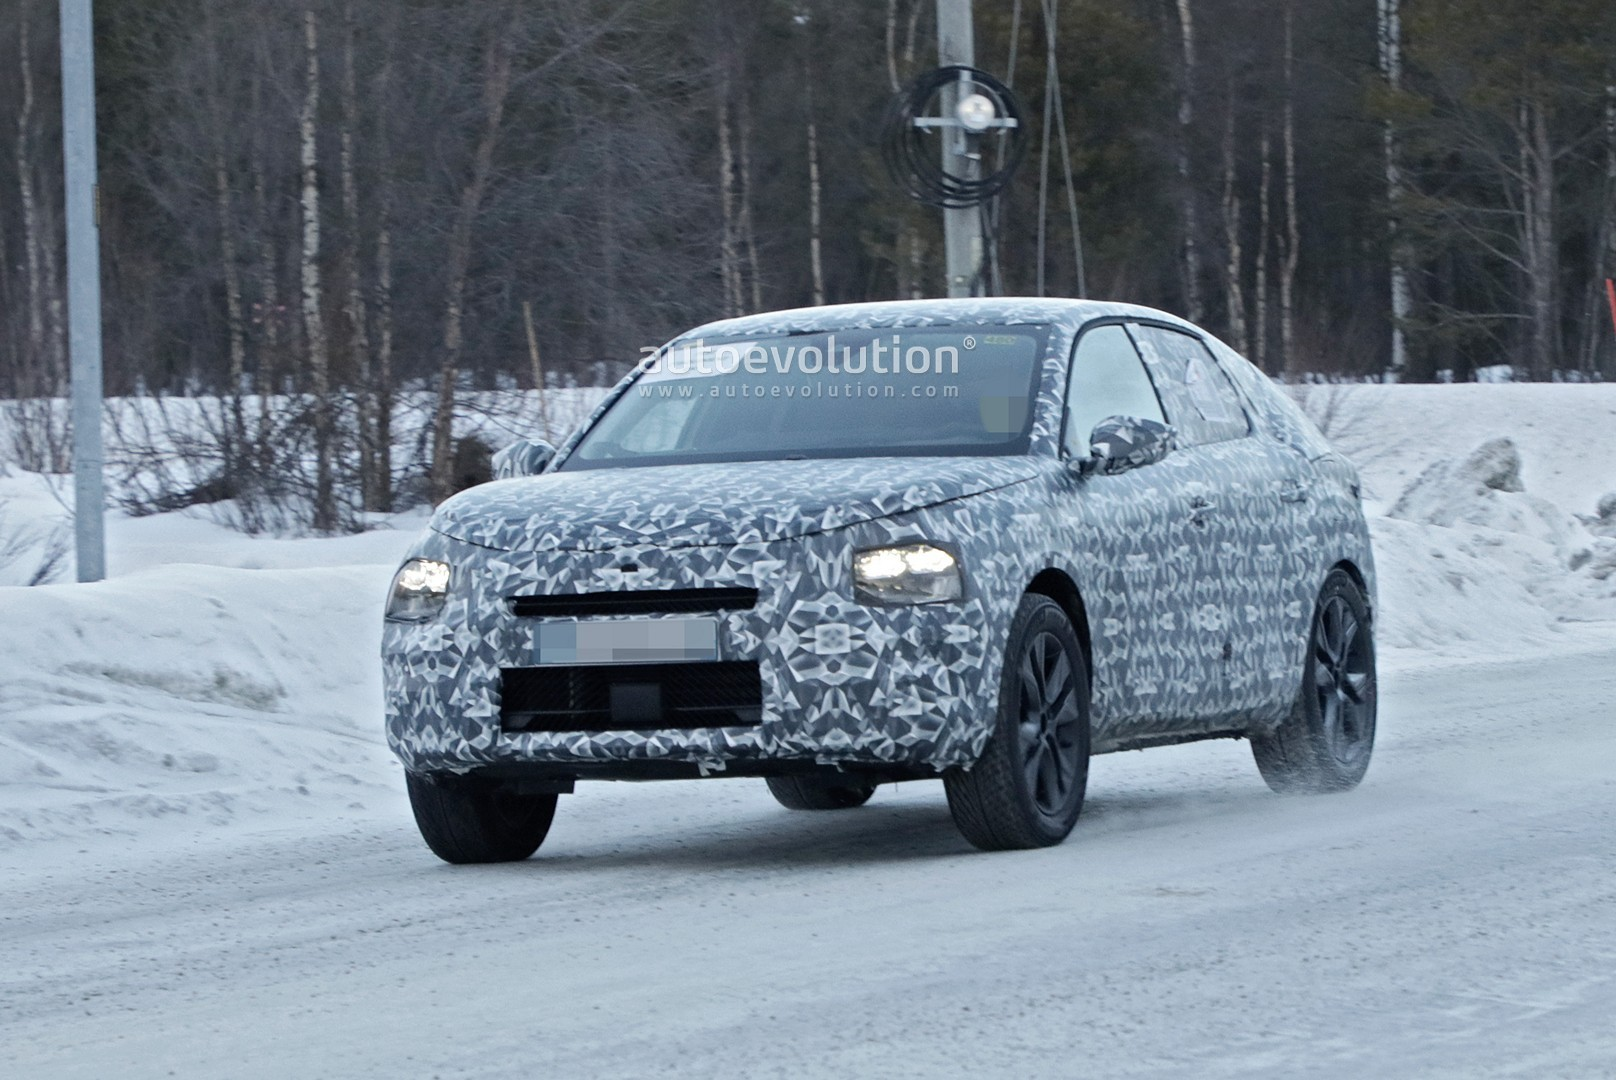 2021 Citroen C4 Cactus Successor Spied Looks Like A Baby